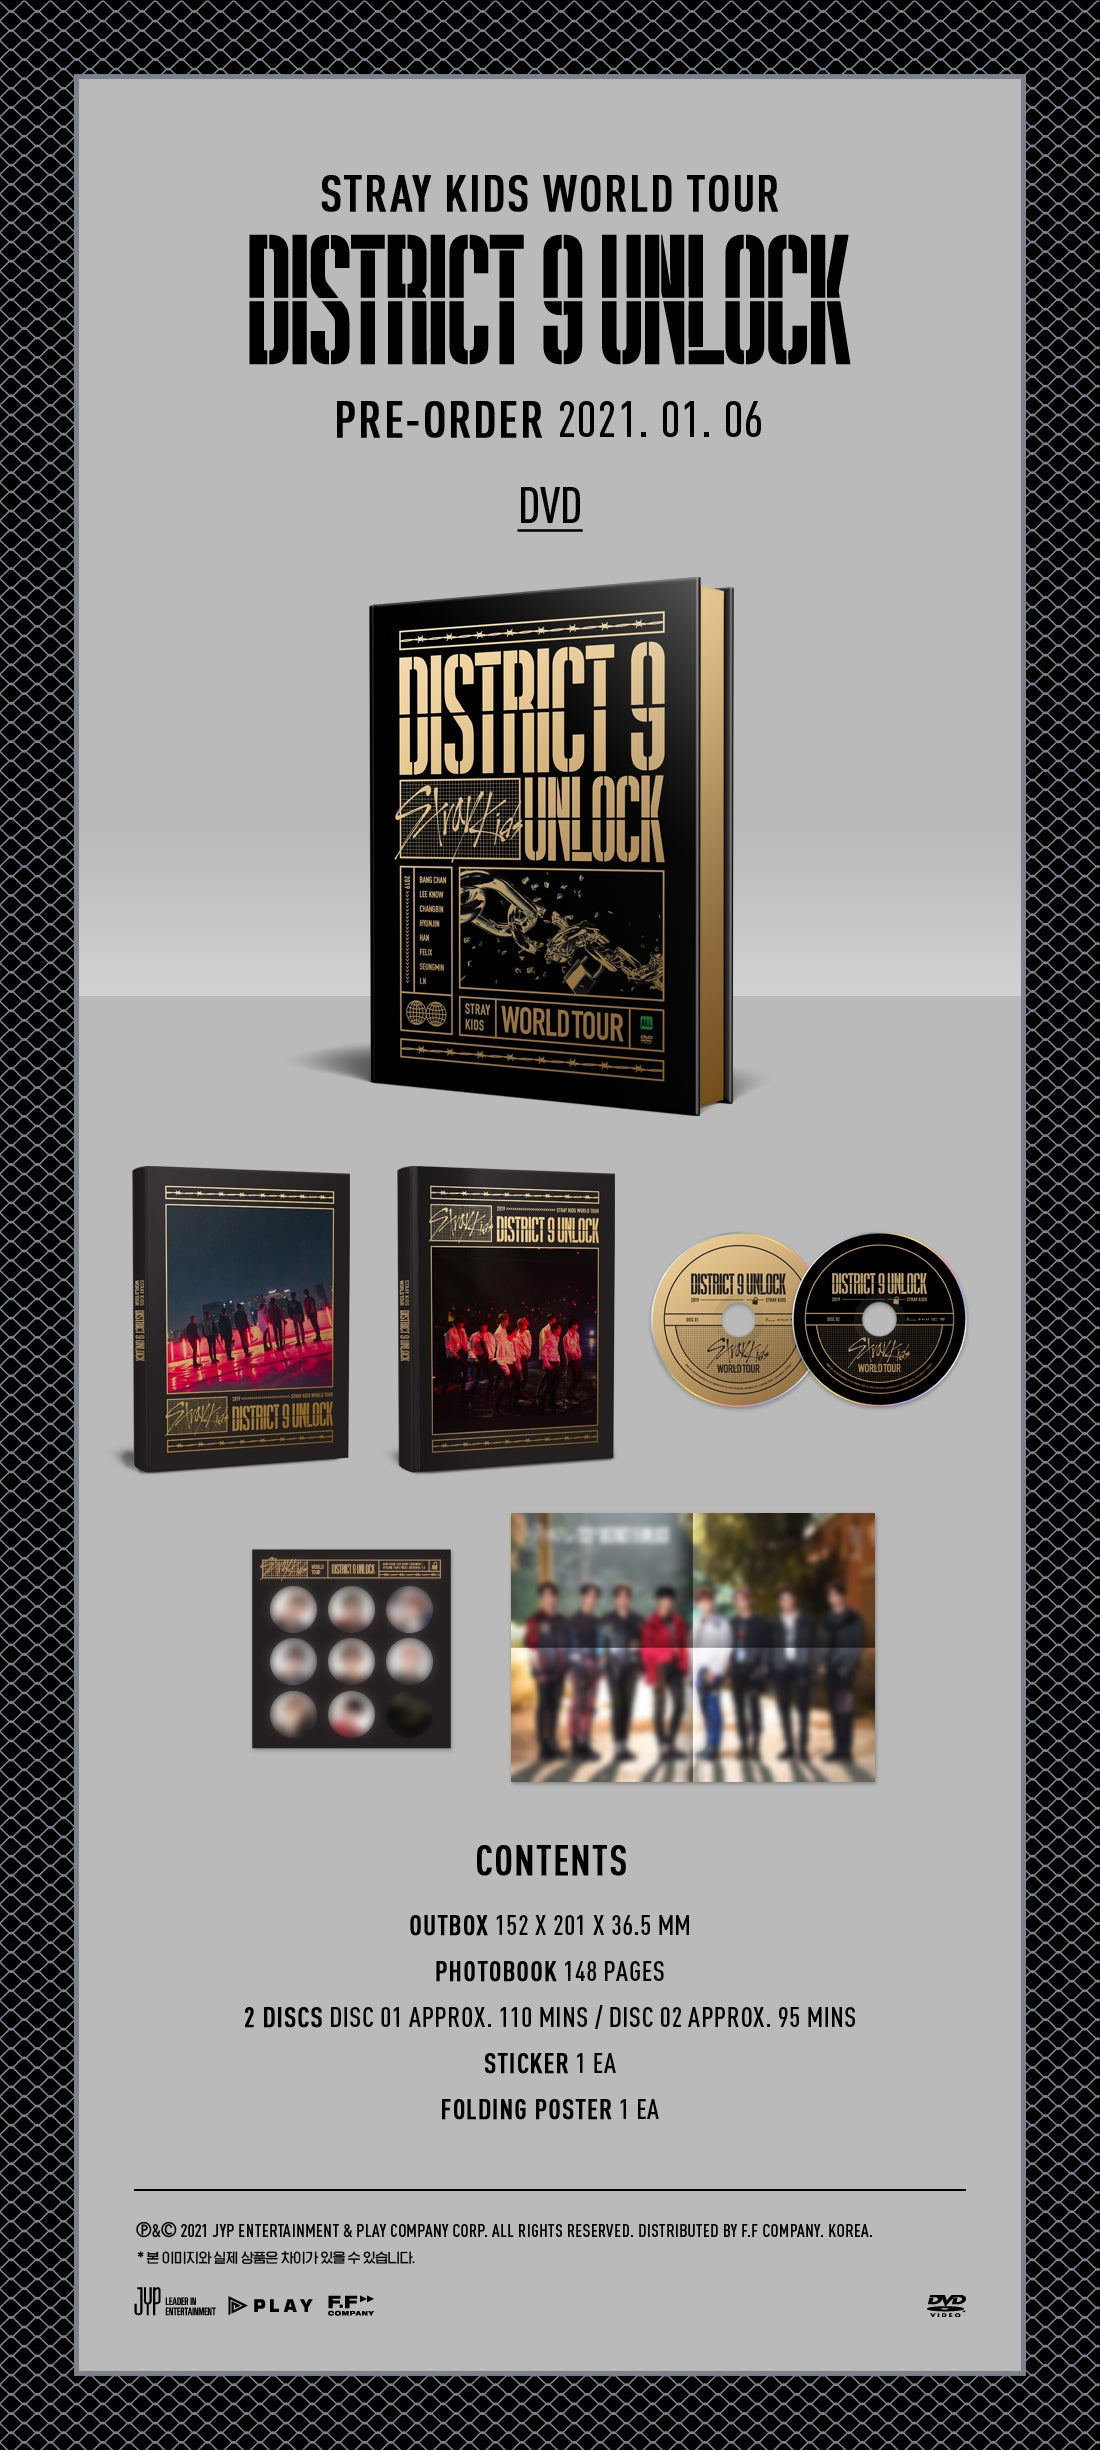 Stray Kids District 9 Unlock DVD SOKOLLAB UK